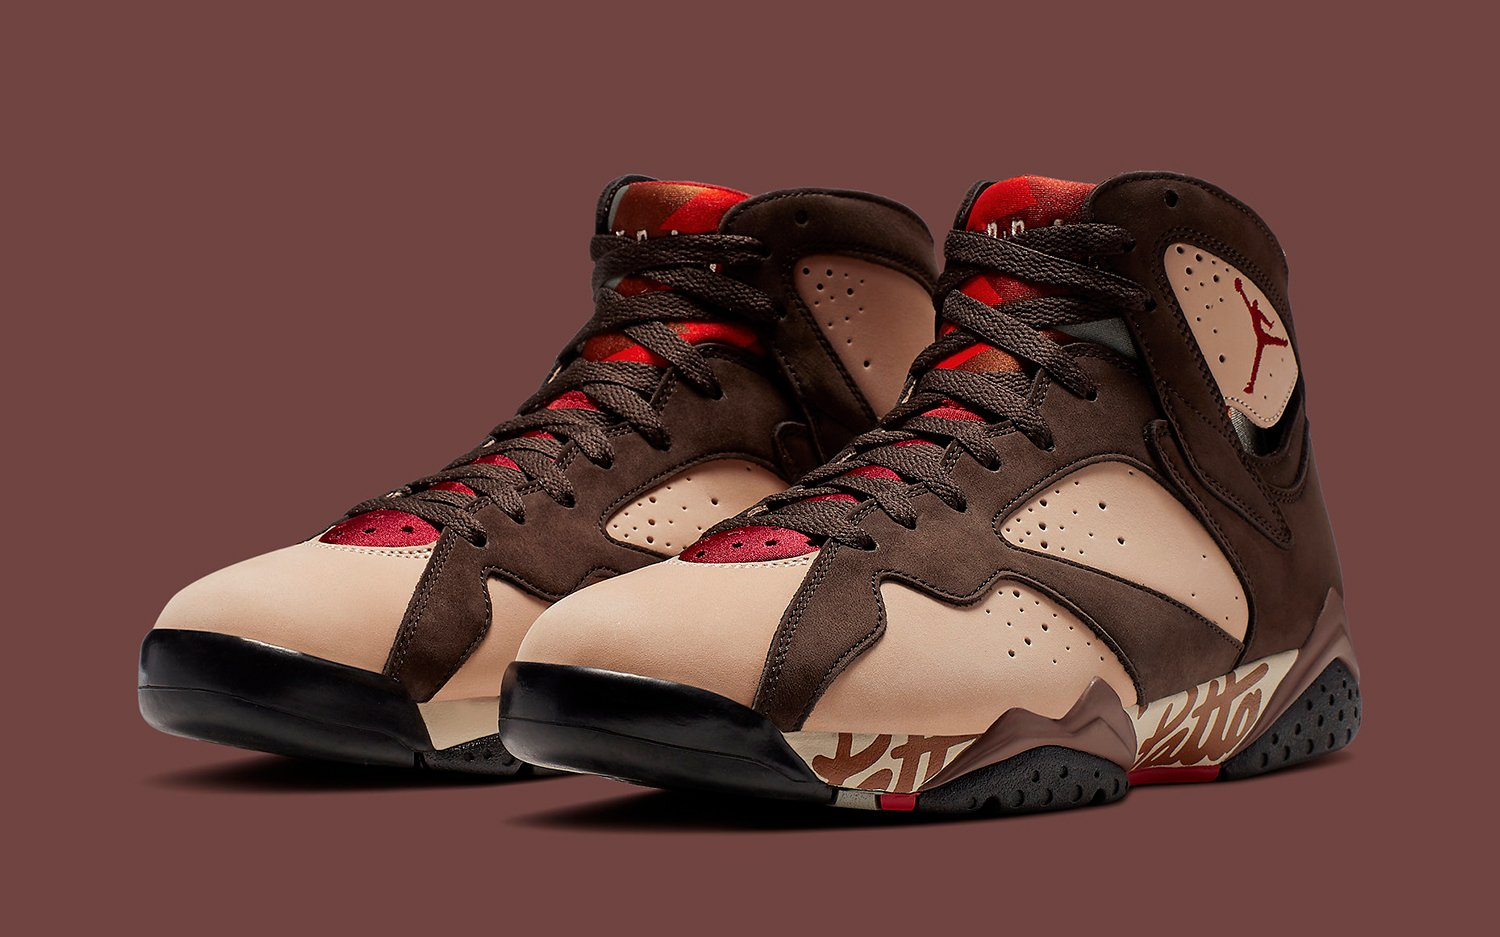 30315378e23 Where to Buy the Patta x Air Jordan 7 - HOUSE OF HEAT | Sneaker ...